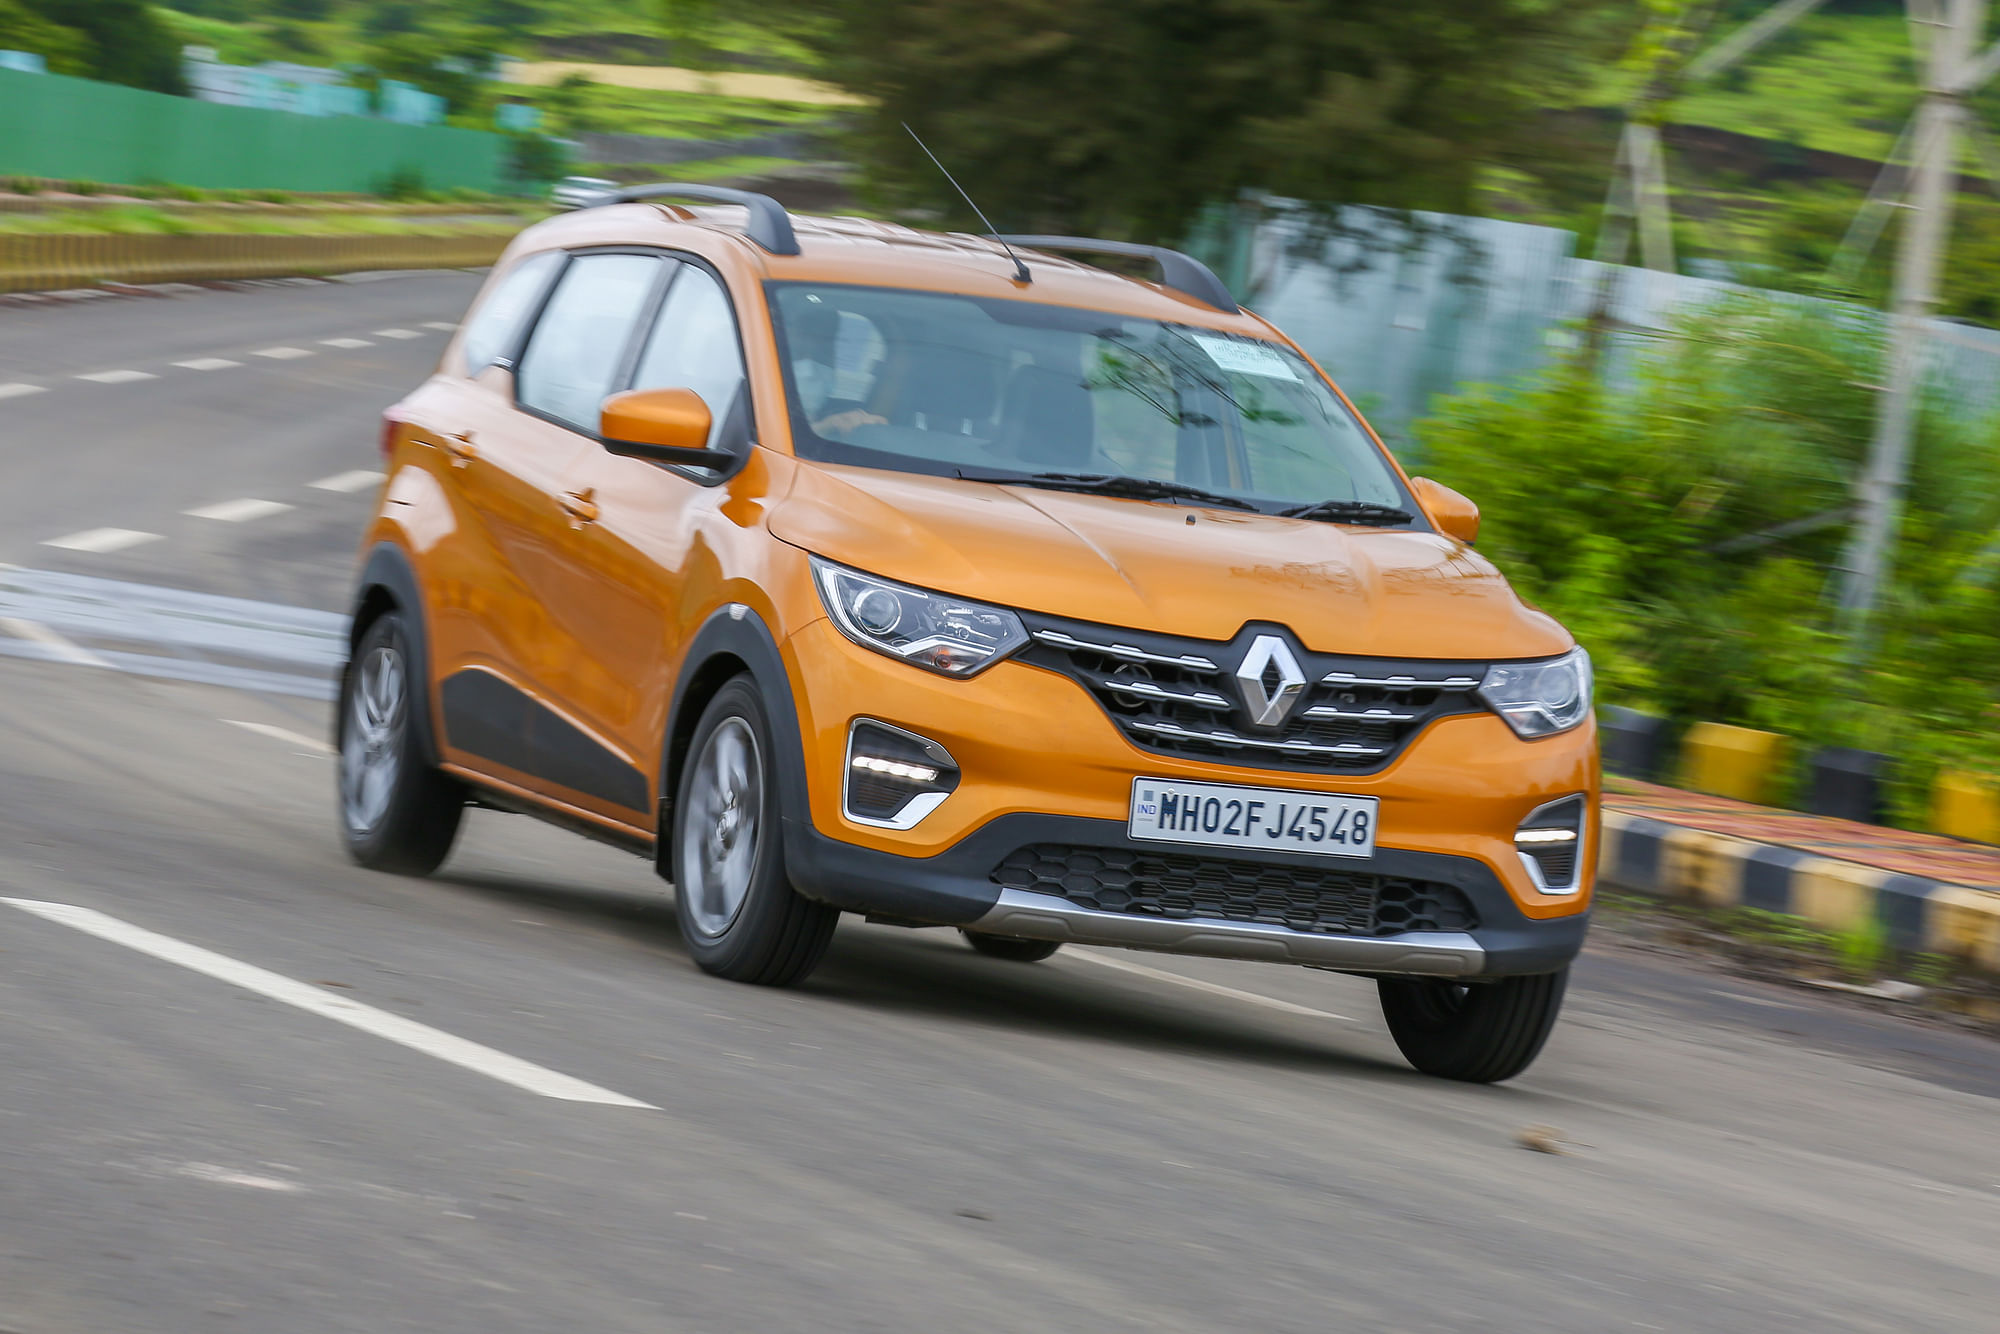 Renault Triber Amt Review Does The Amt Perform Well In The Budget Friendly Seven Seater